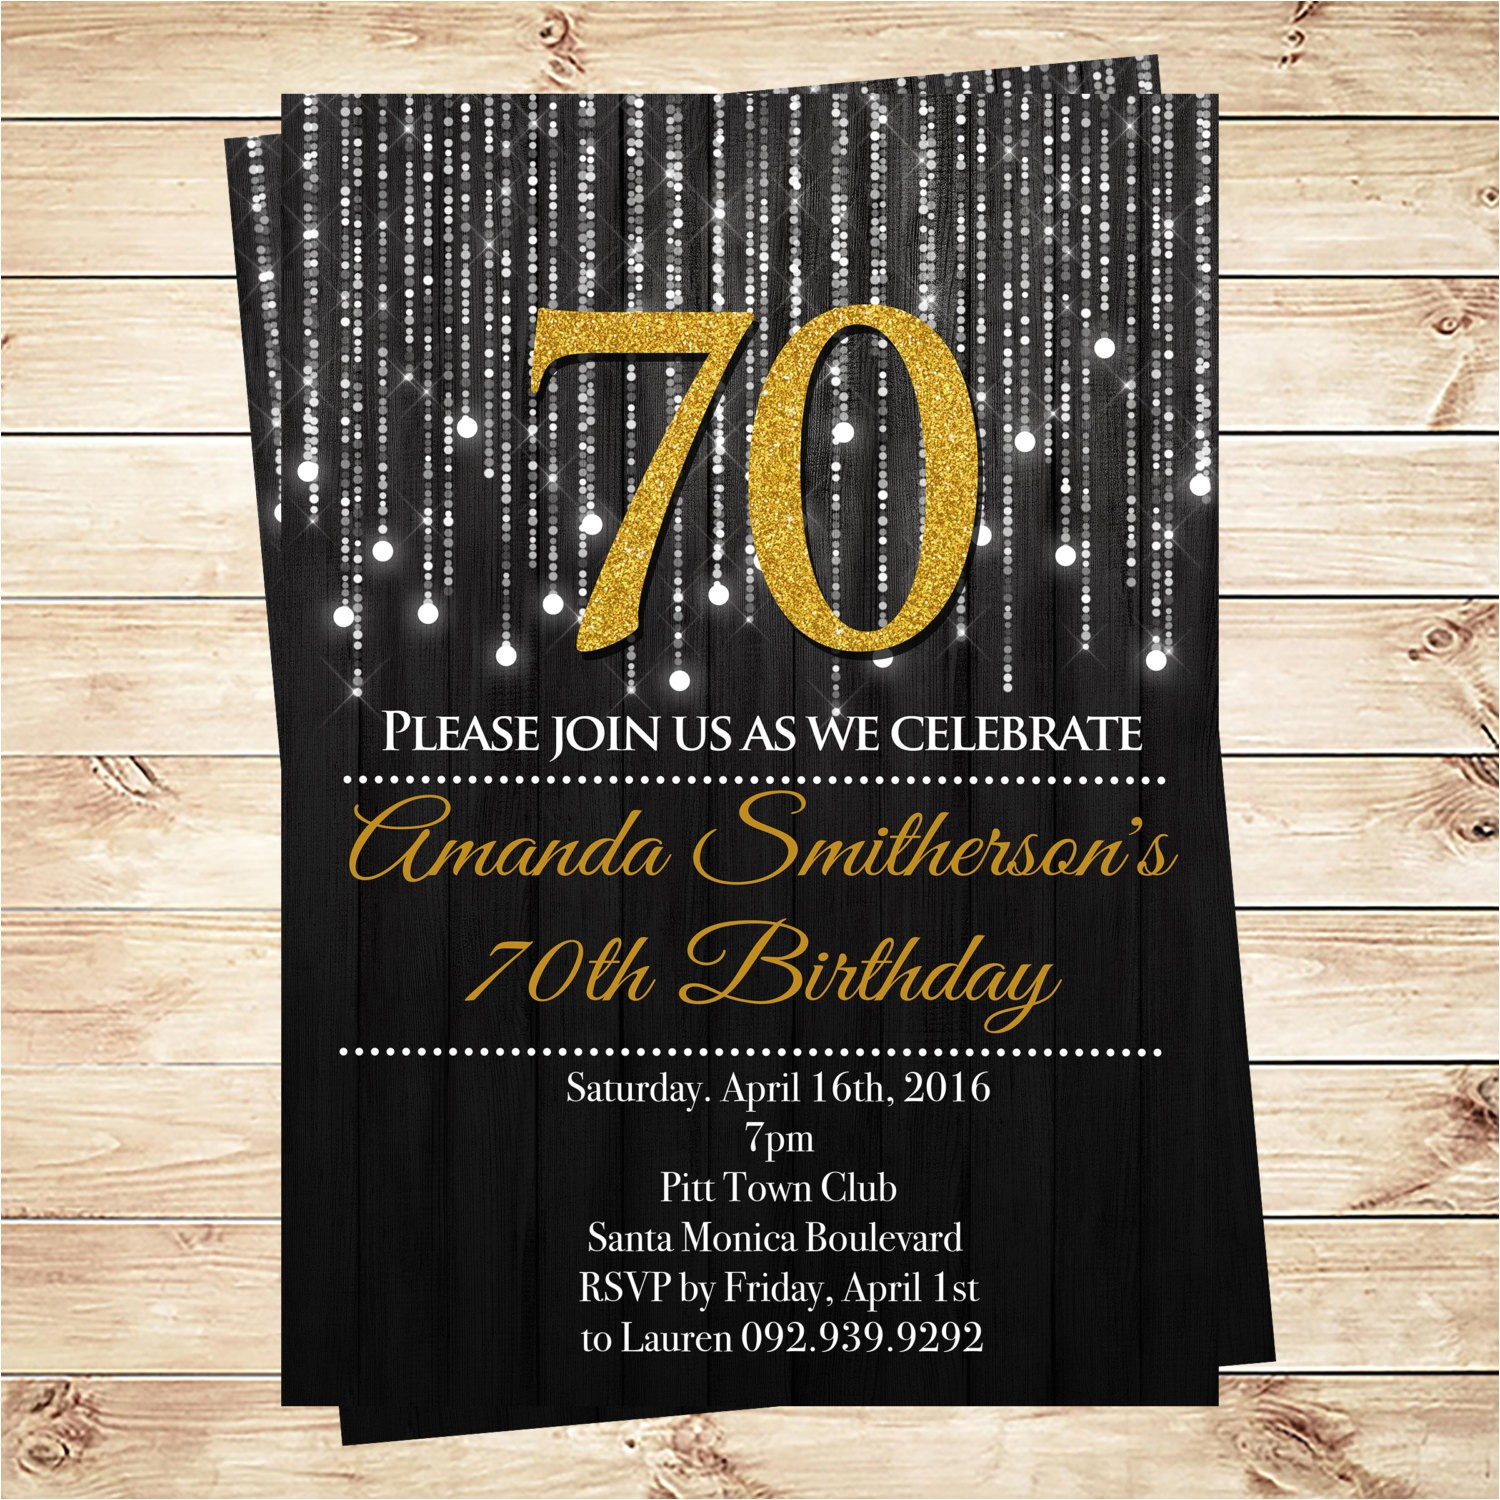 70th Birthday Invitations Free Download Black and Gold 70th Birthday Invitations by Diypartyinvitation